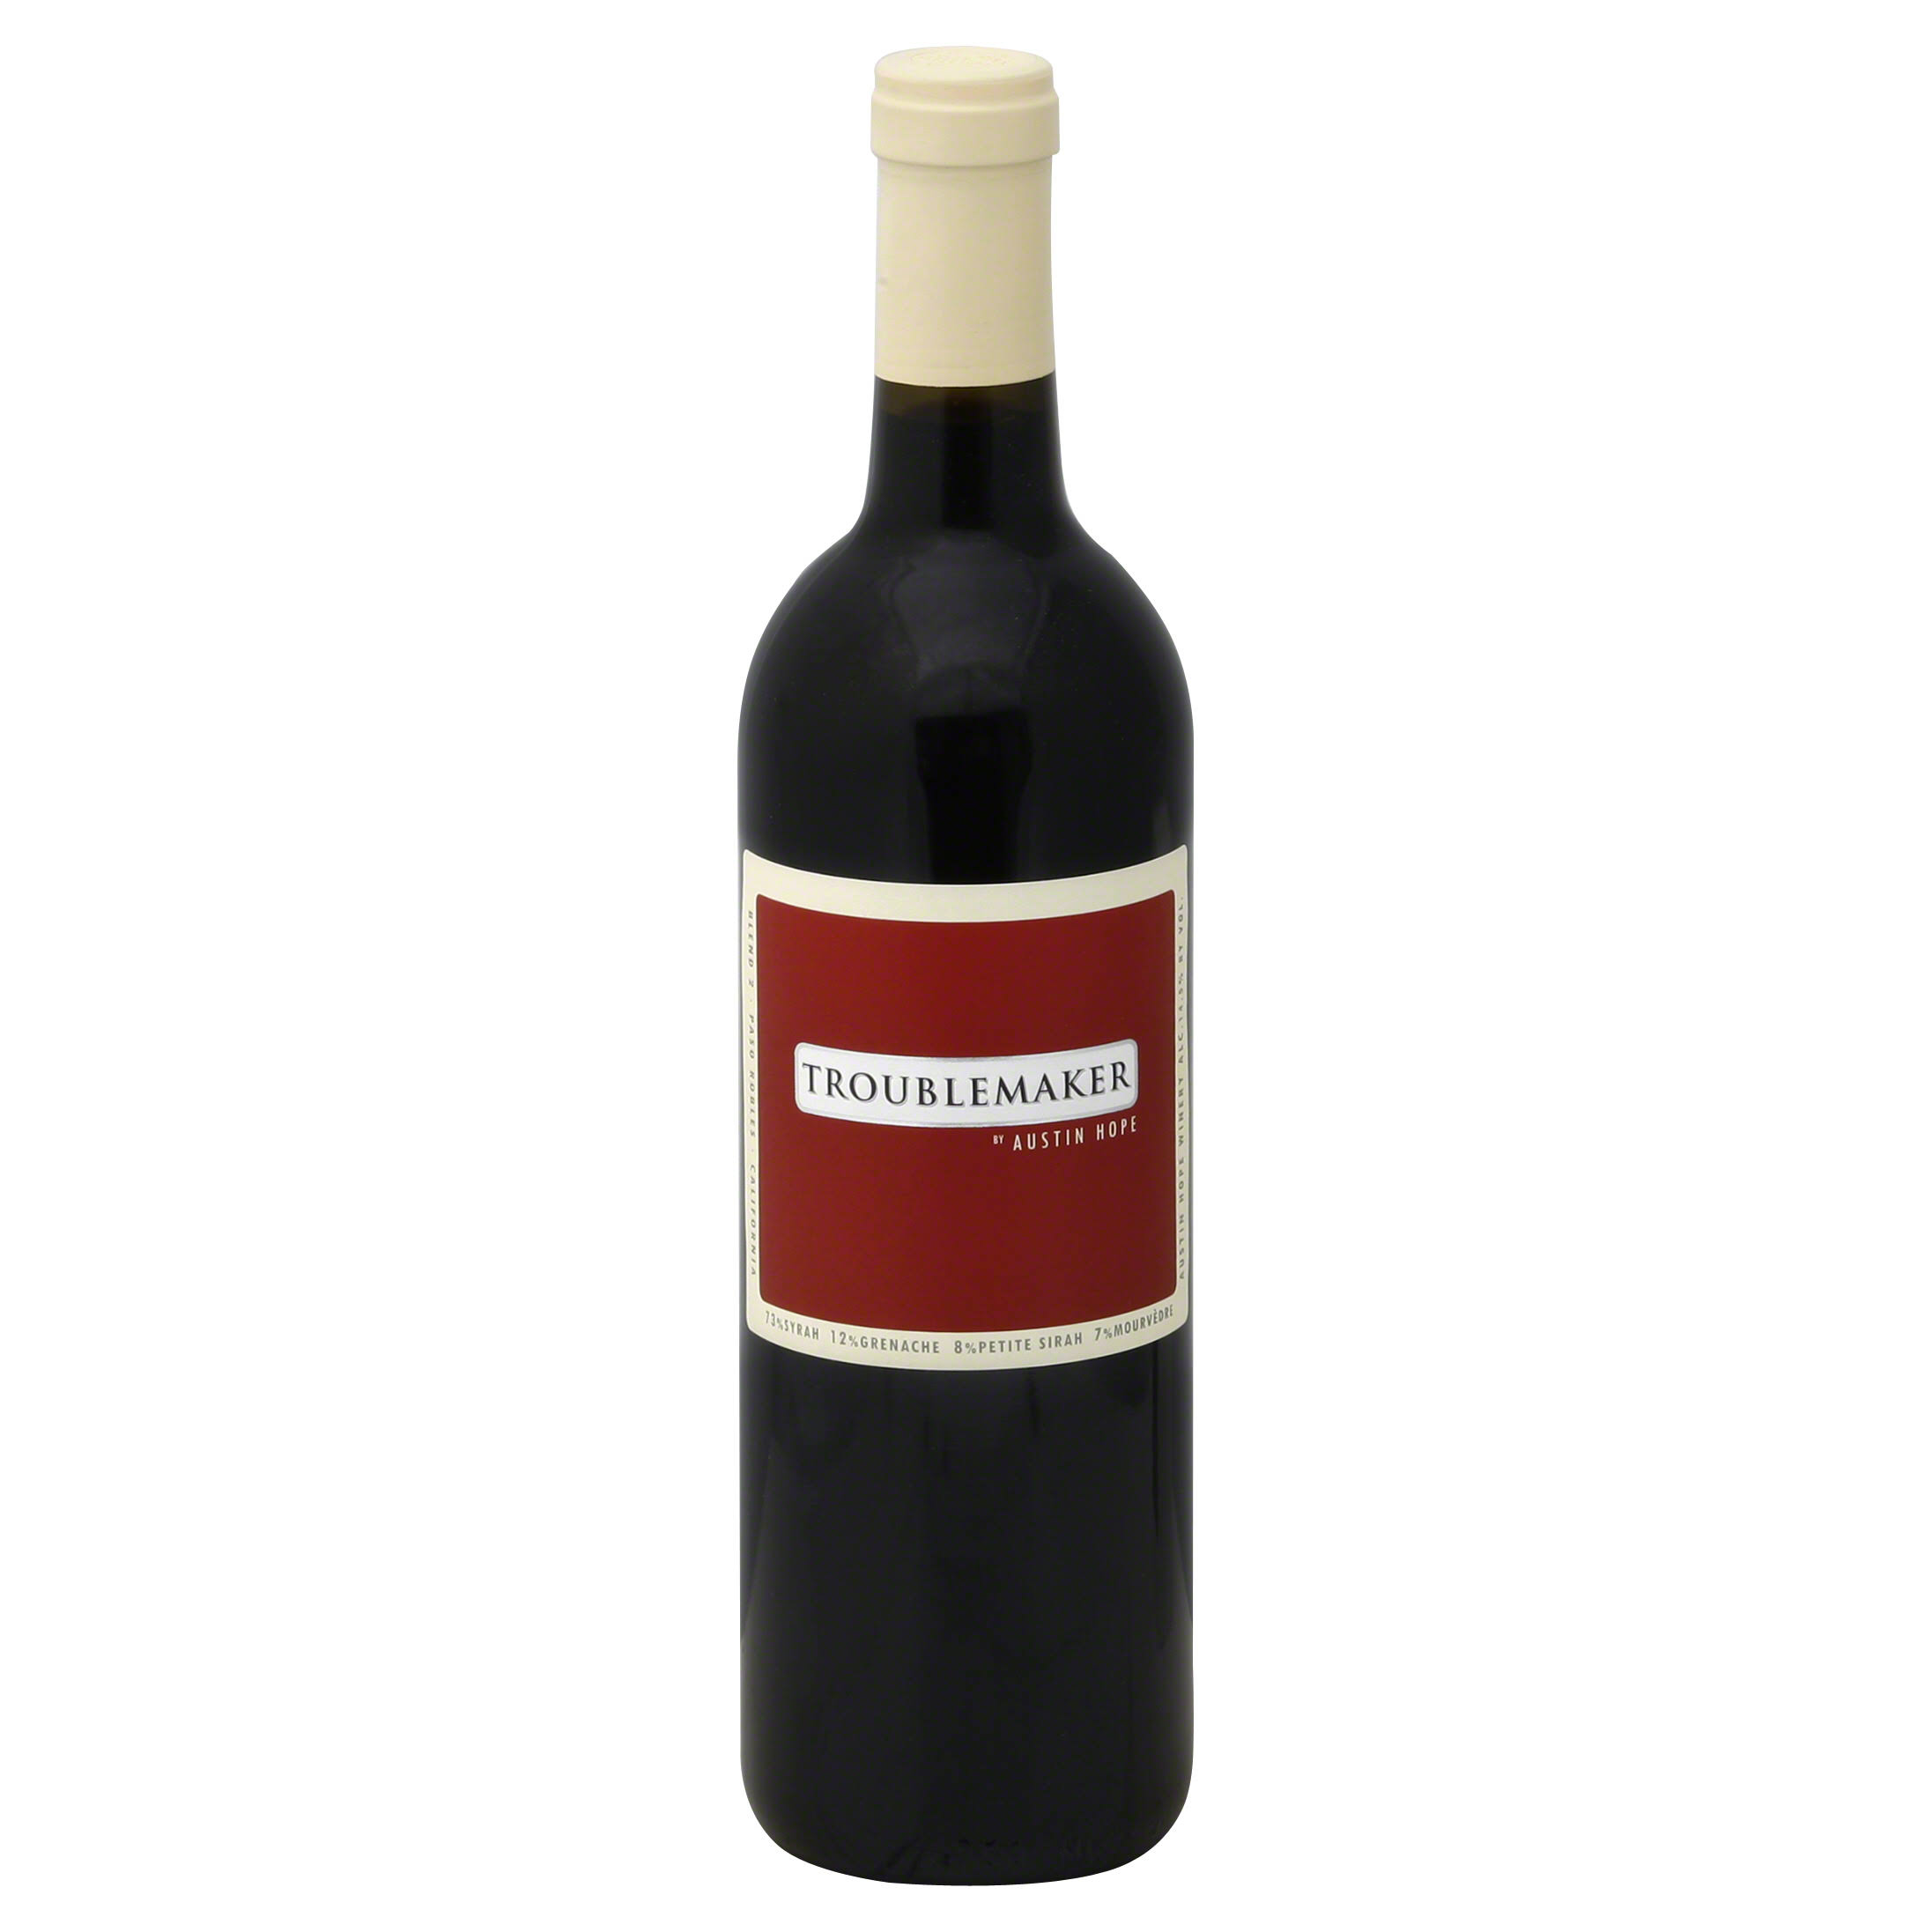 Austin Troublemaker, Blend 2, Paso Robles, California - 750 ml